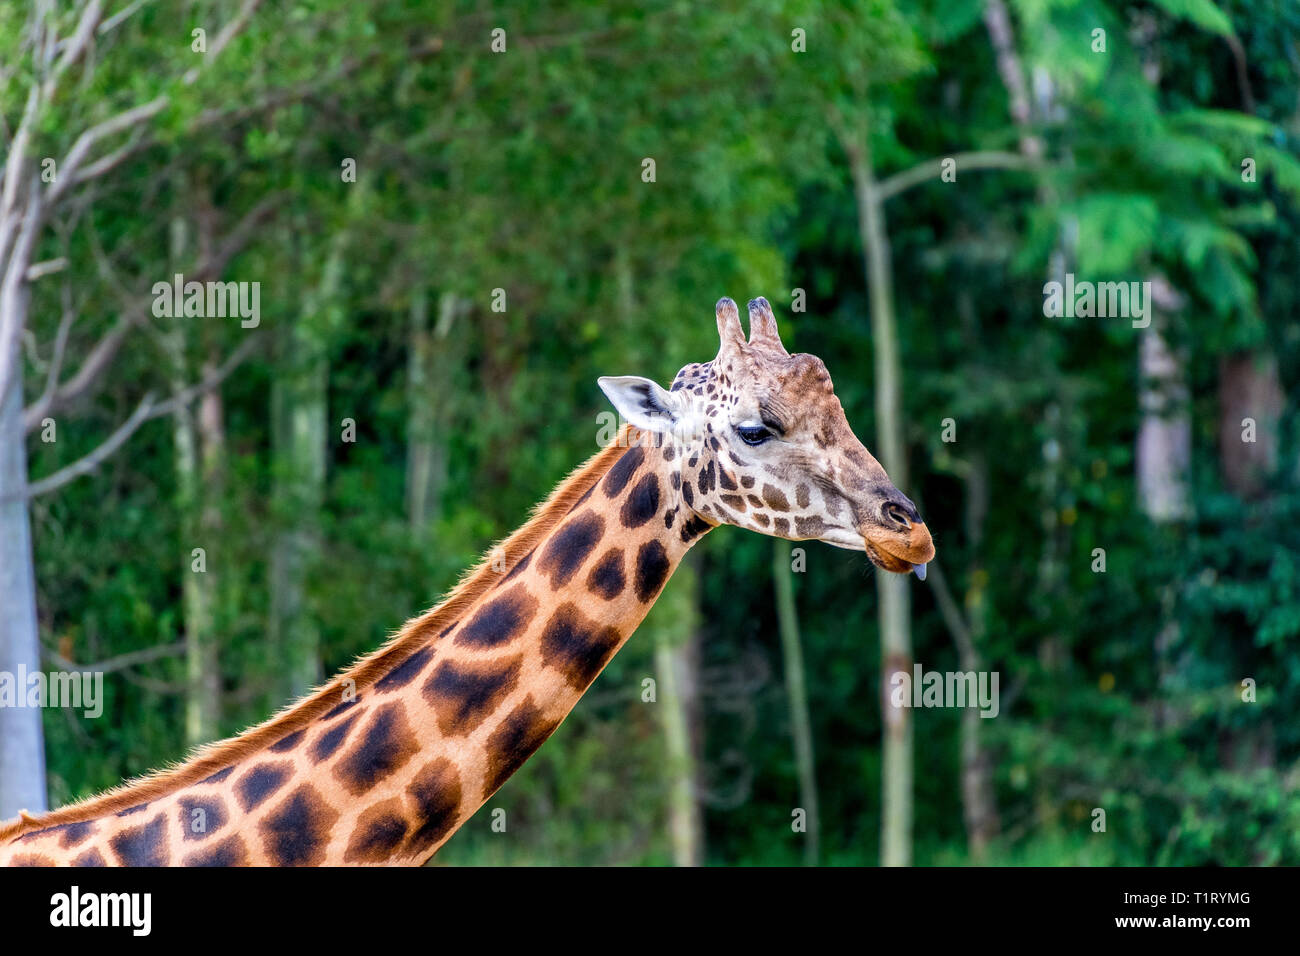 The giraffe (Giraffa) is a genus of African even-toed ungulate mammals, the tallest living terrestrial animals and the largest ruminants. - Stock Image